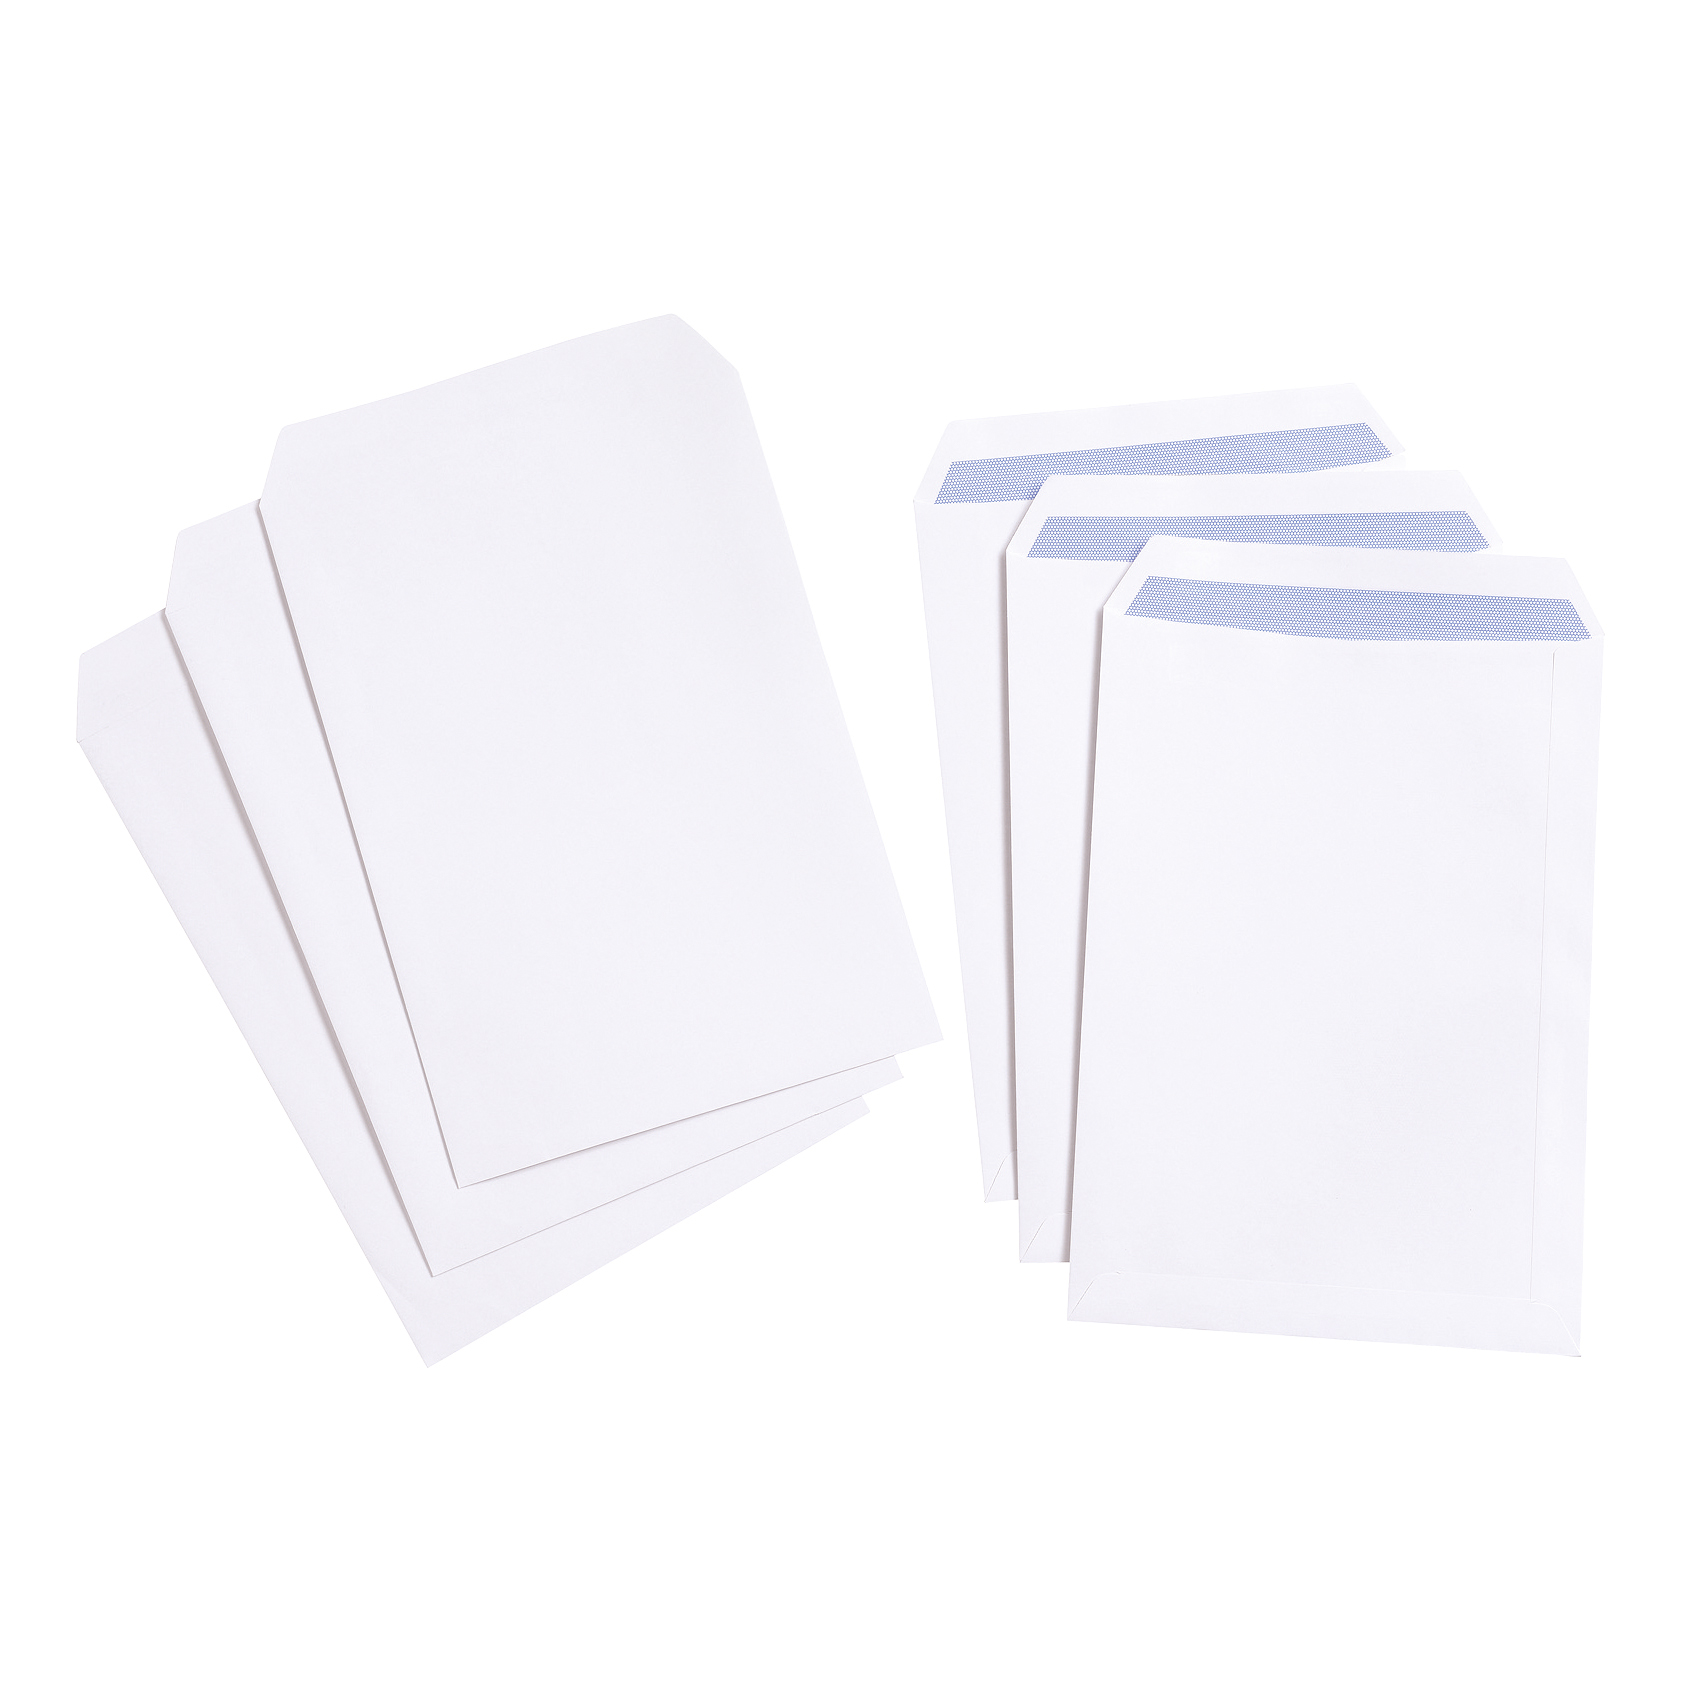 C4 5 Star Value Envelope C4 Pocket Self Seal 100gsm White Pack 250